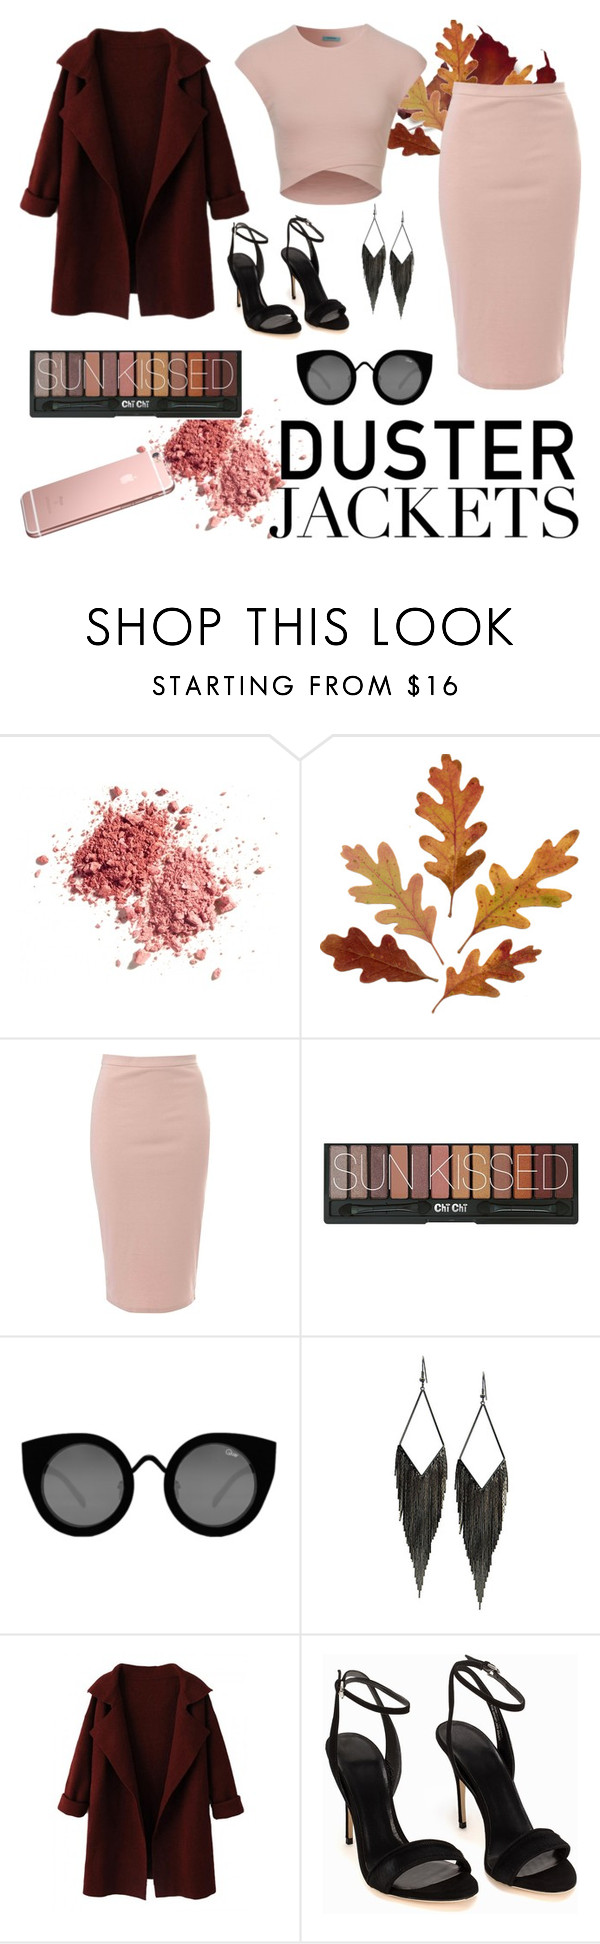 """""""Duster Jackets Contest"""" by janaehallinan ❤ liked on Polyvore featuring Glamorous, Quay, GUESS, polyvoreeditorial, PolyvoreMostStylish and dusterjacket"""